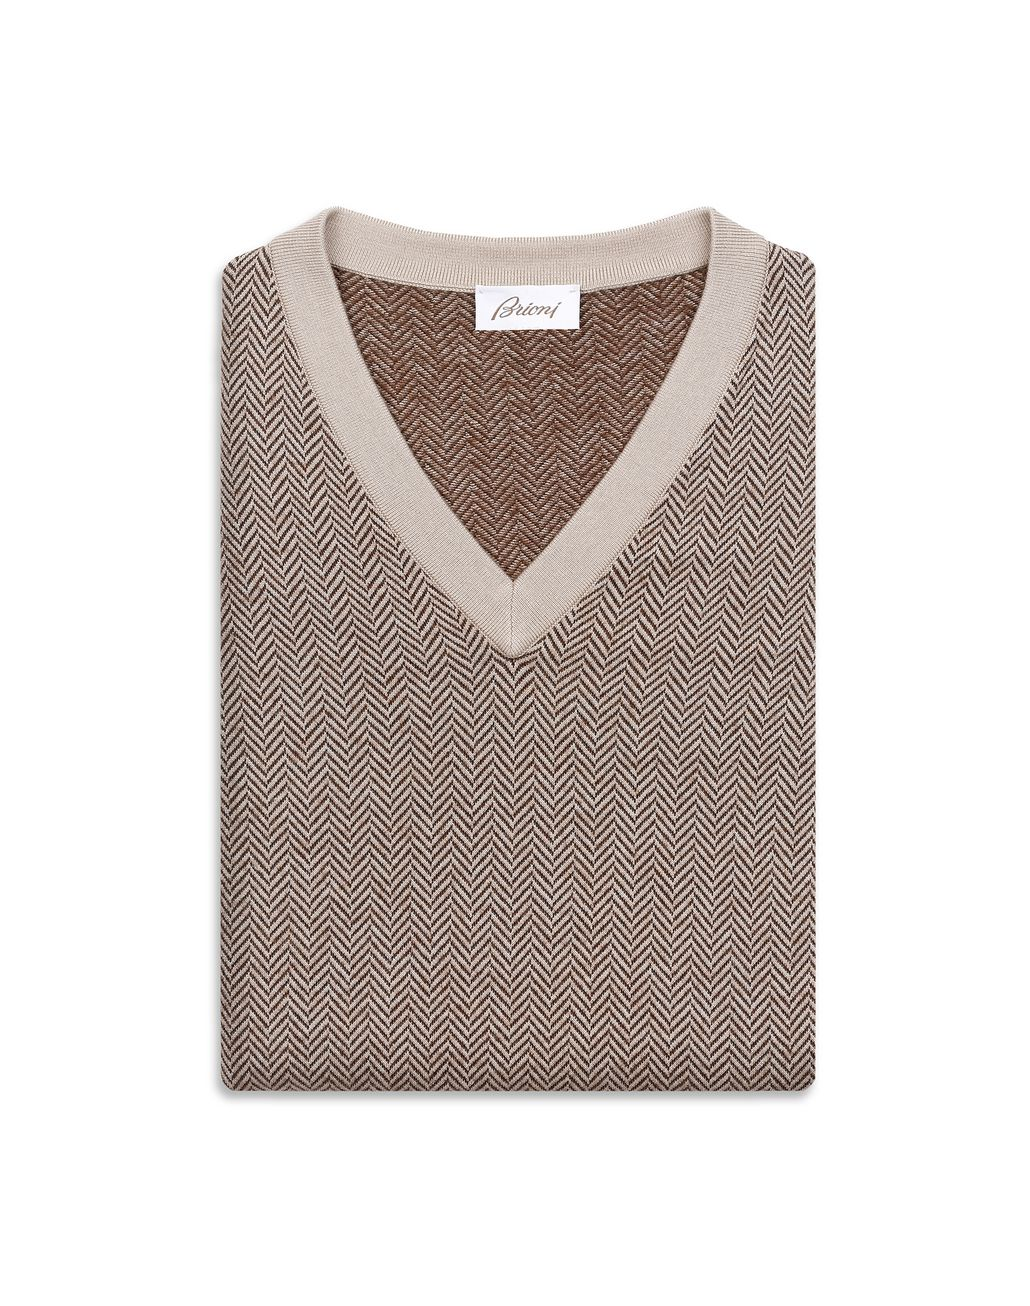 BRIONI Camel and Brown Herringbone V Neck Sweater Knitwear [*** pickupInStoreShippingNotGuaranteed_info ***] e